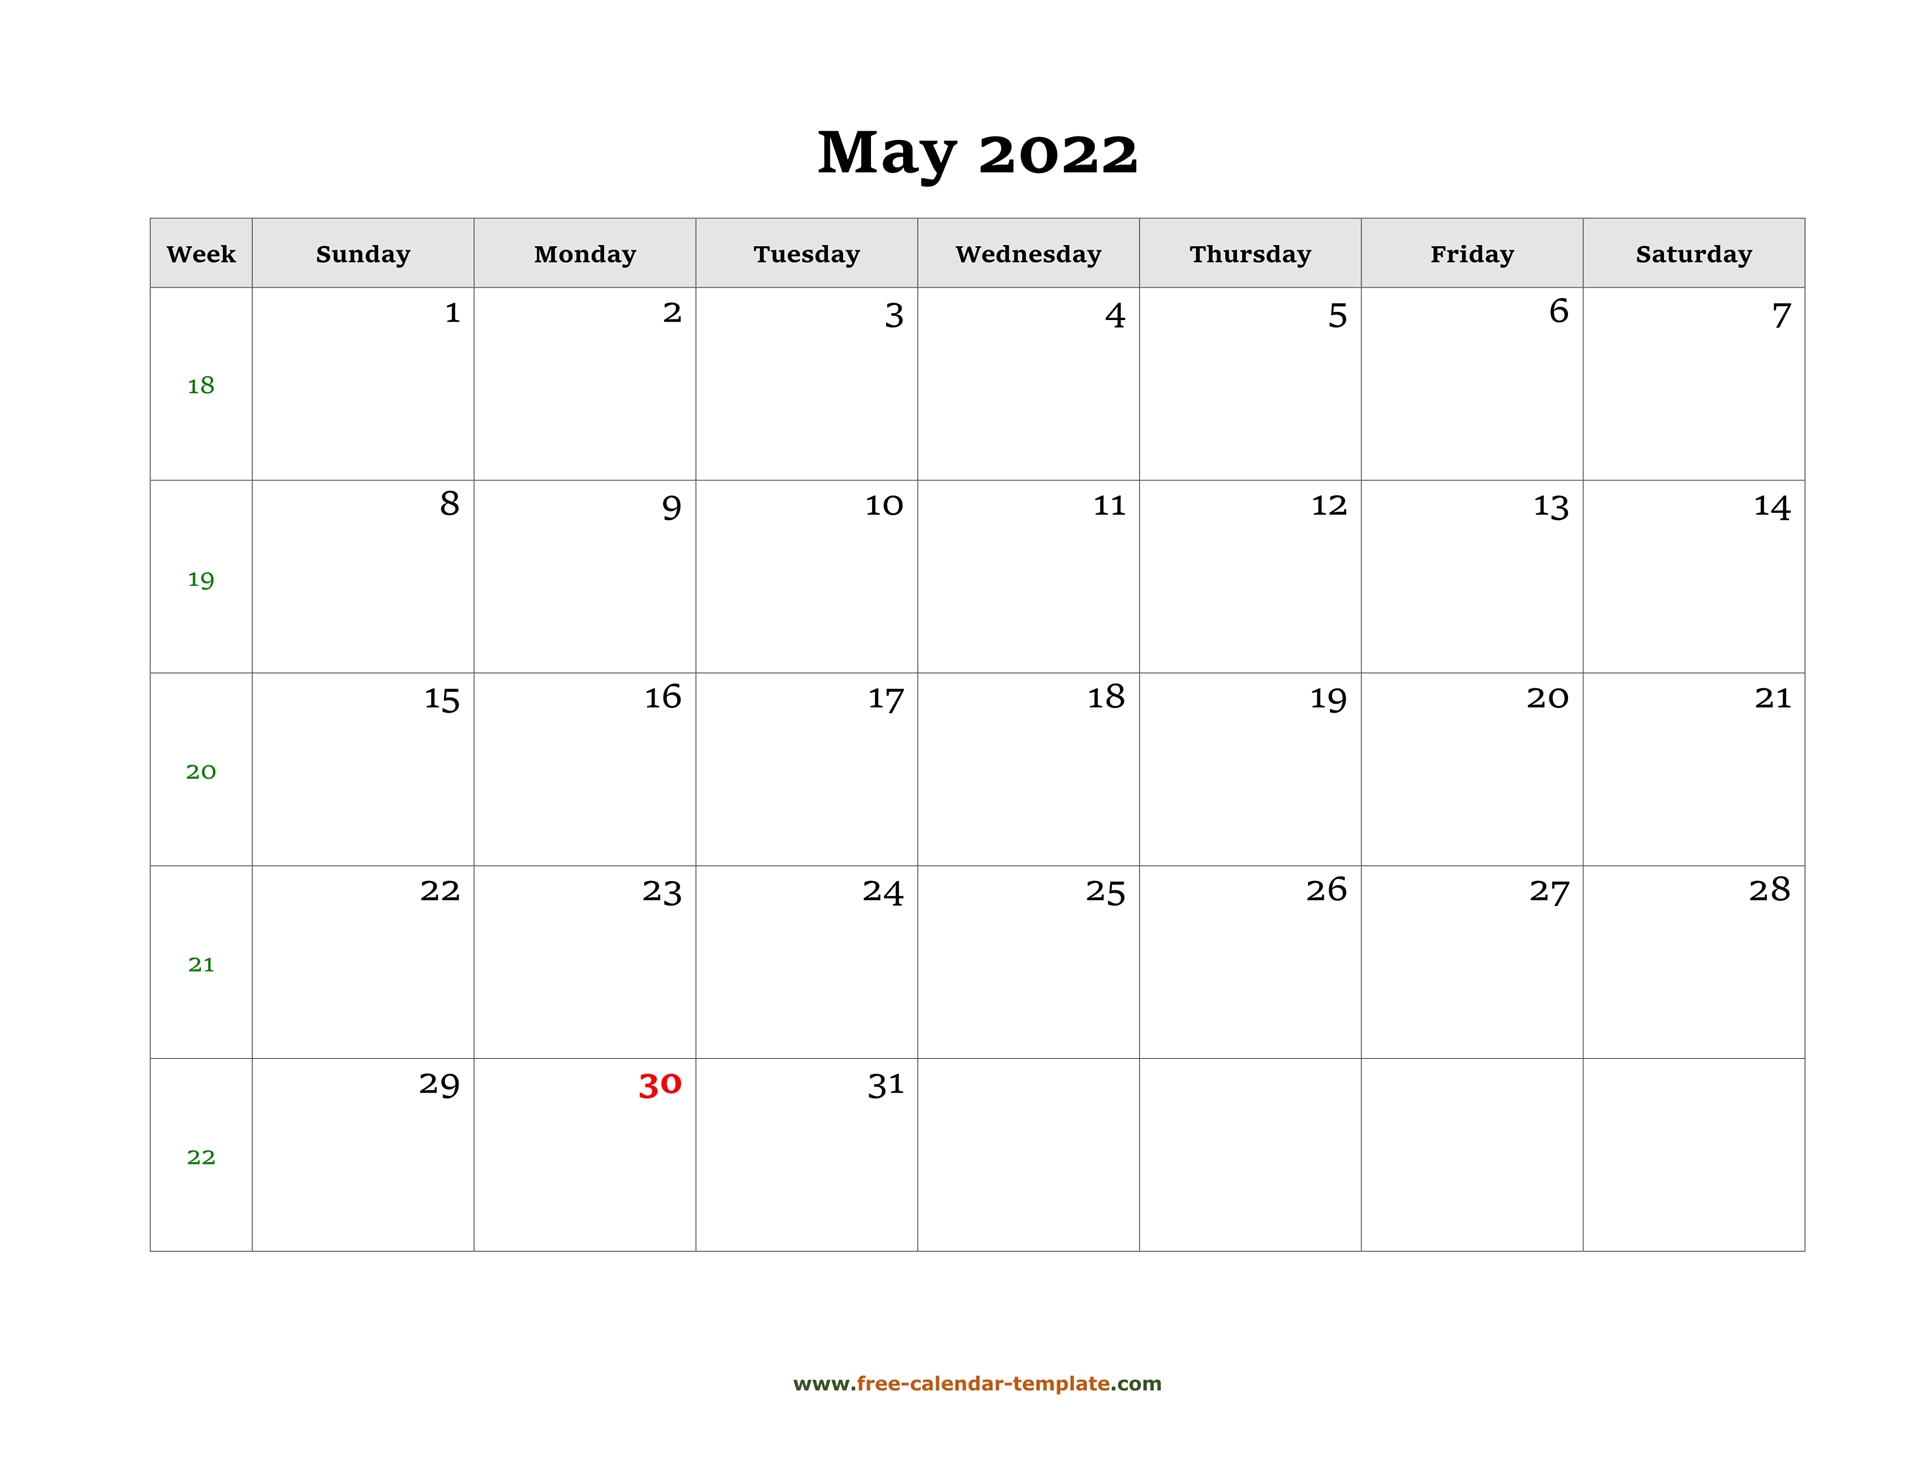 Simple May Calendar 2022 Large Box On Each Day For Notes. | Free Calendar Template Within Landscape Calendar January 2022